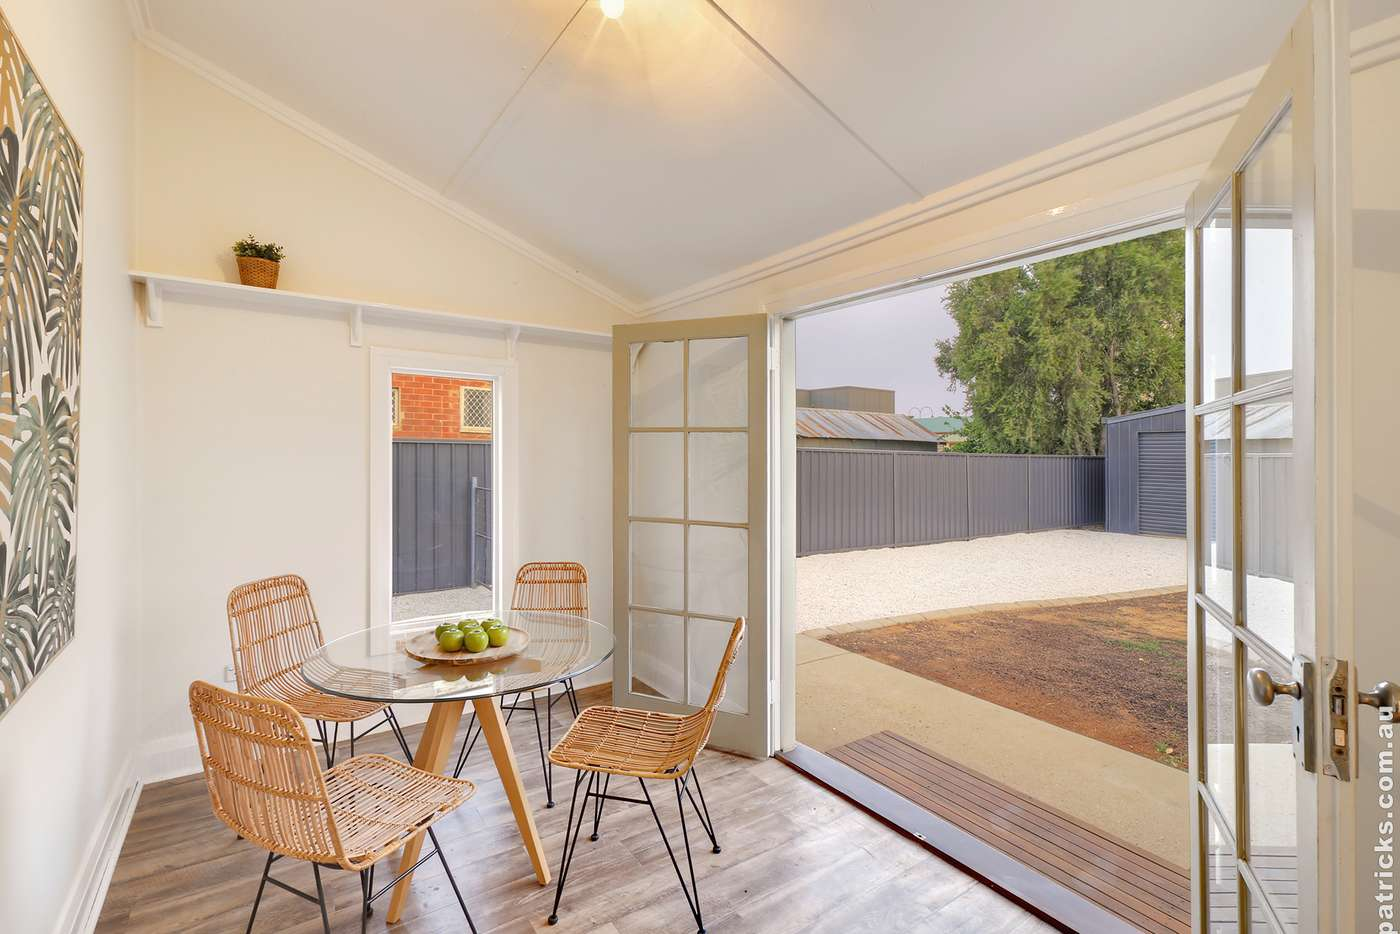 Fifth view of Homely house listing, 14 Crampton Street, Wagga Wagga NSW 2650